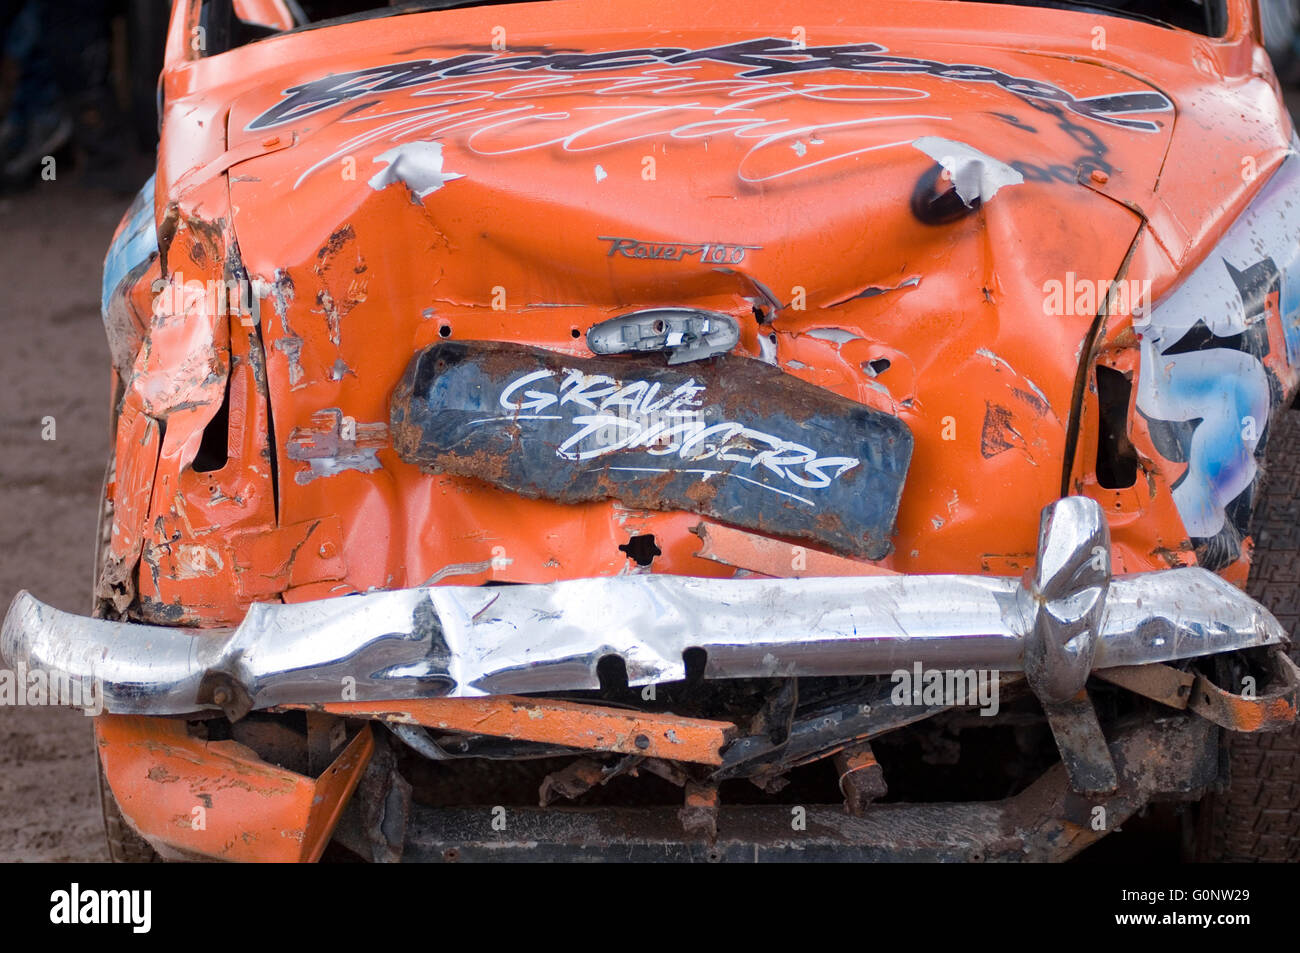 bent old car crashed dented dent crashed panel beater beating scratched accident car cars crashed crash insurance - Stock Image